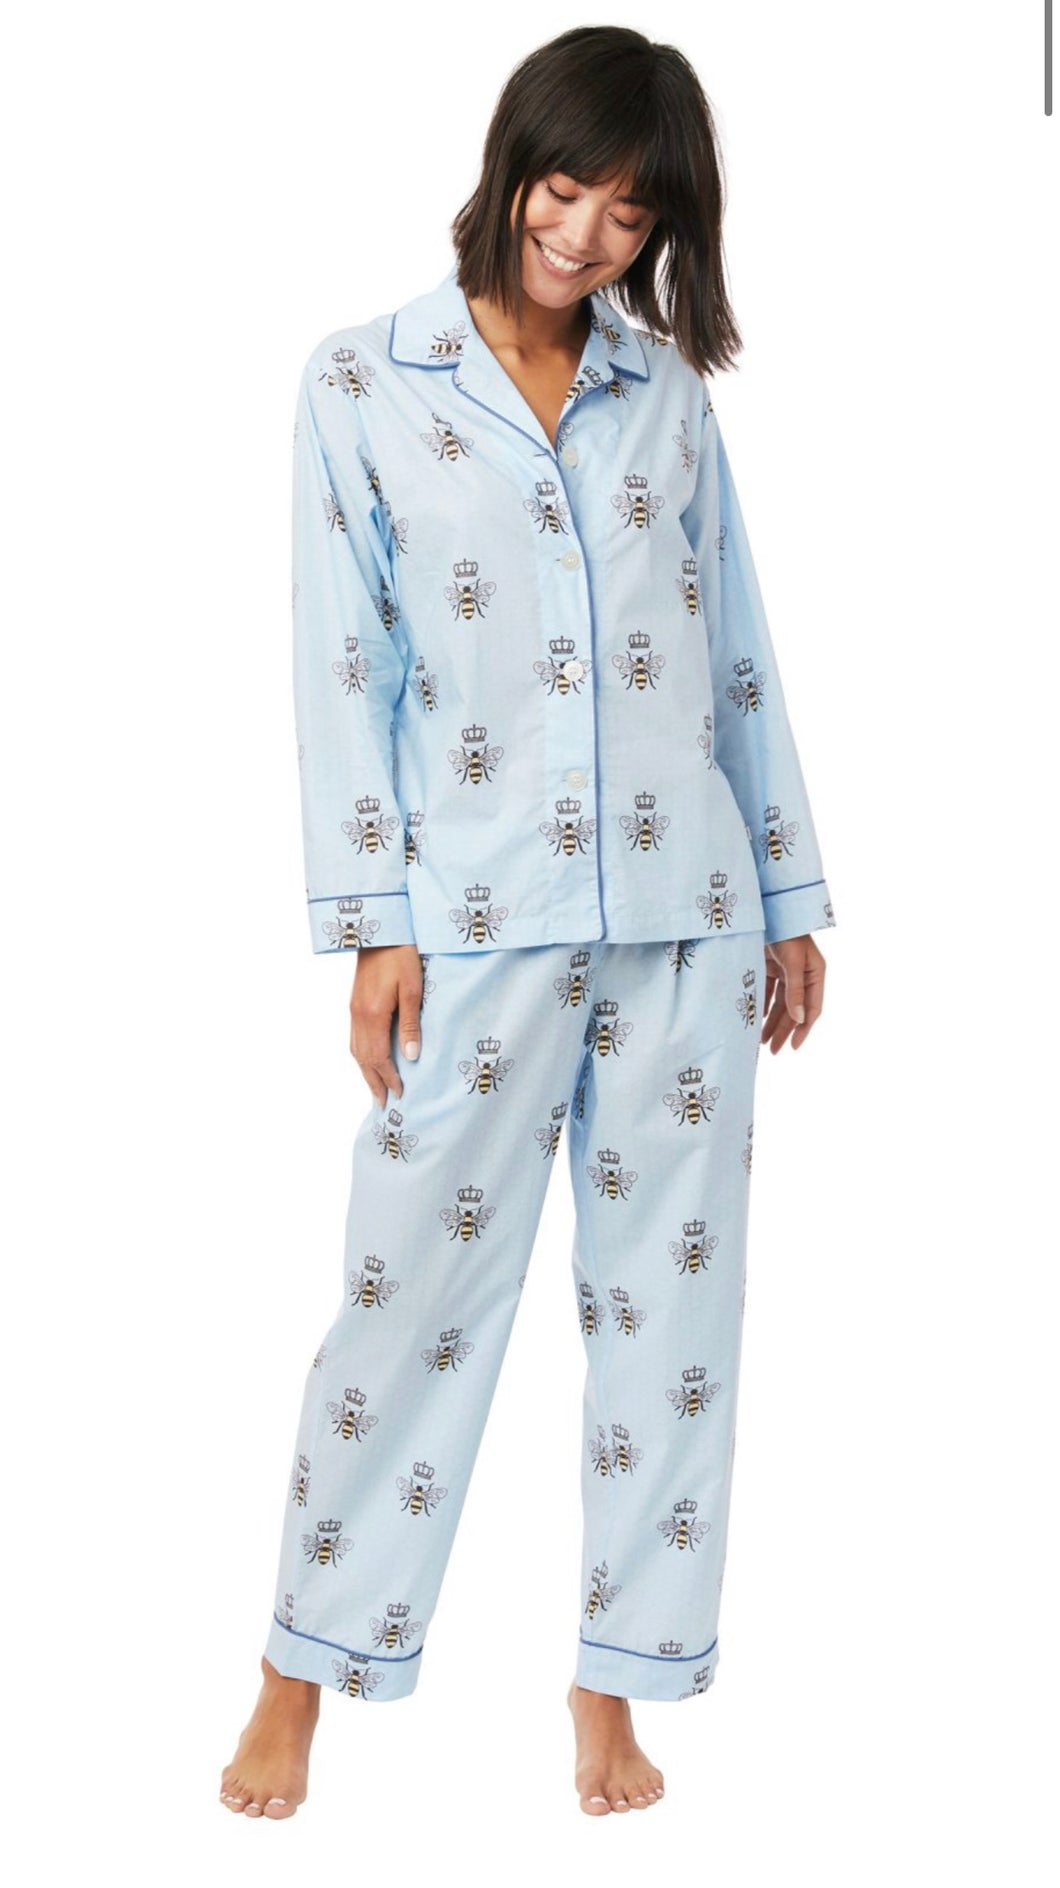 Bumble Bee Pajama